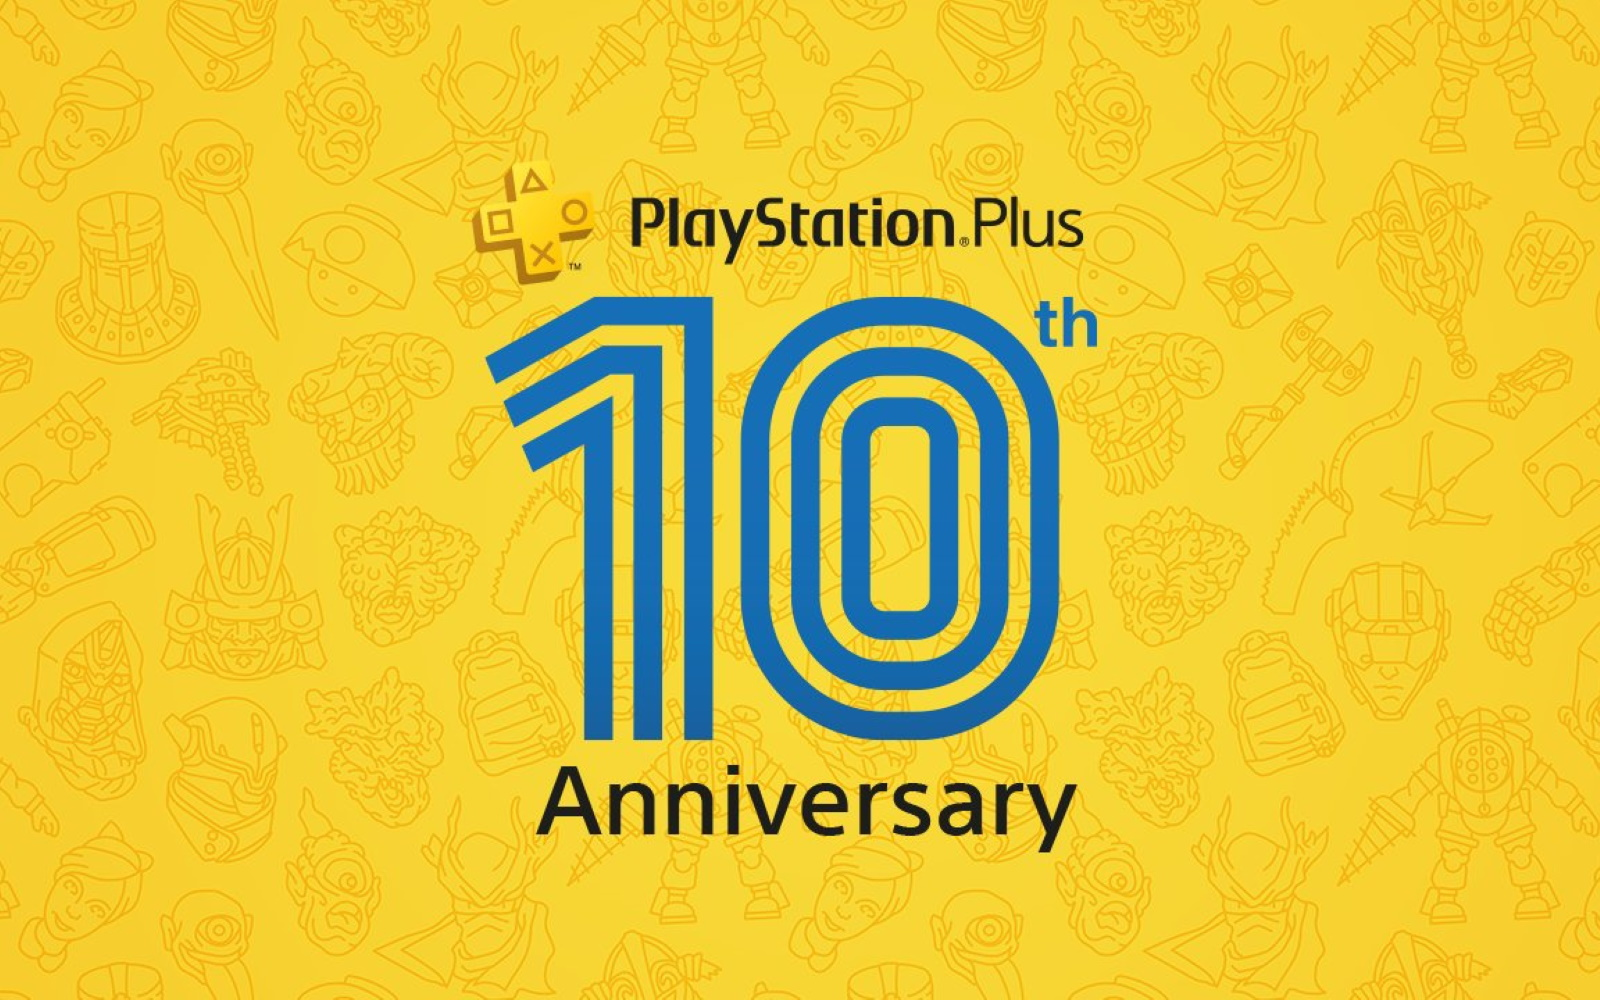 PlayStation Celebrates 10 Year Anniversary & Announce July PS Plus Titles